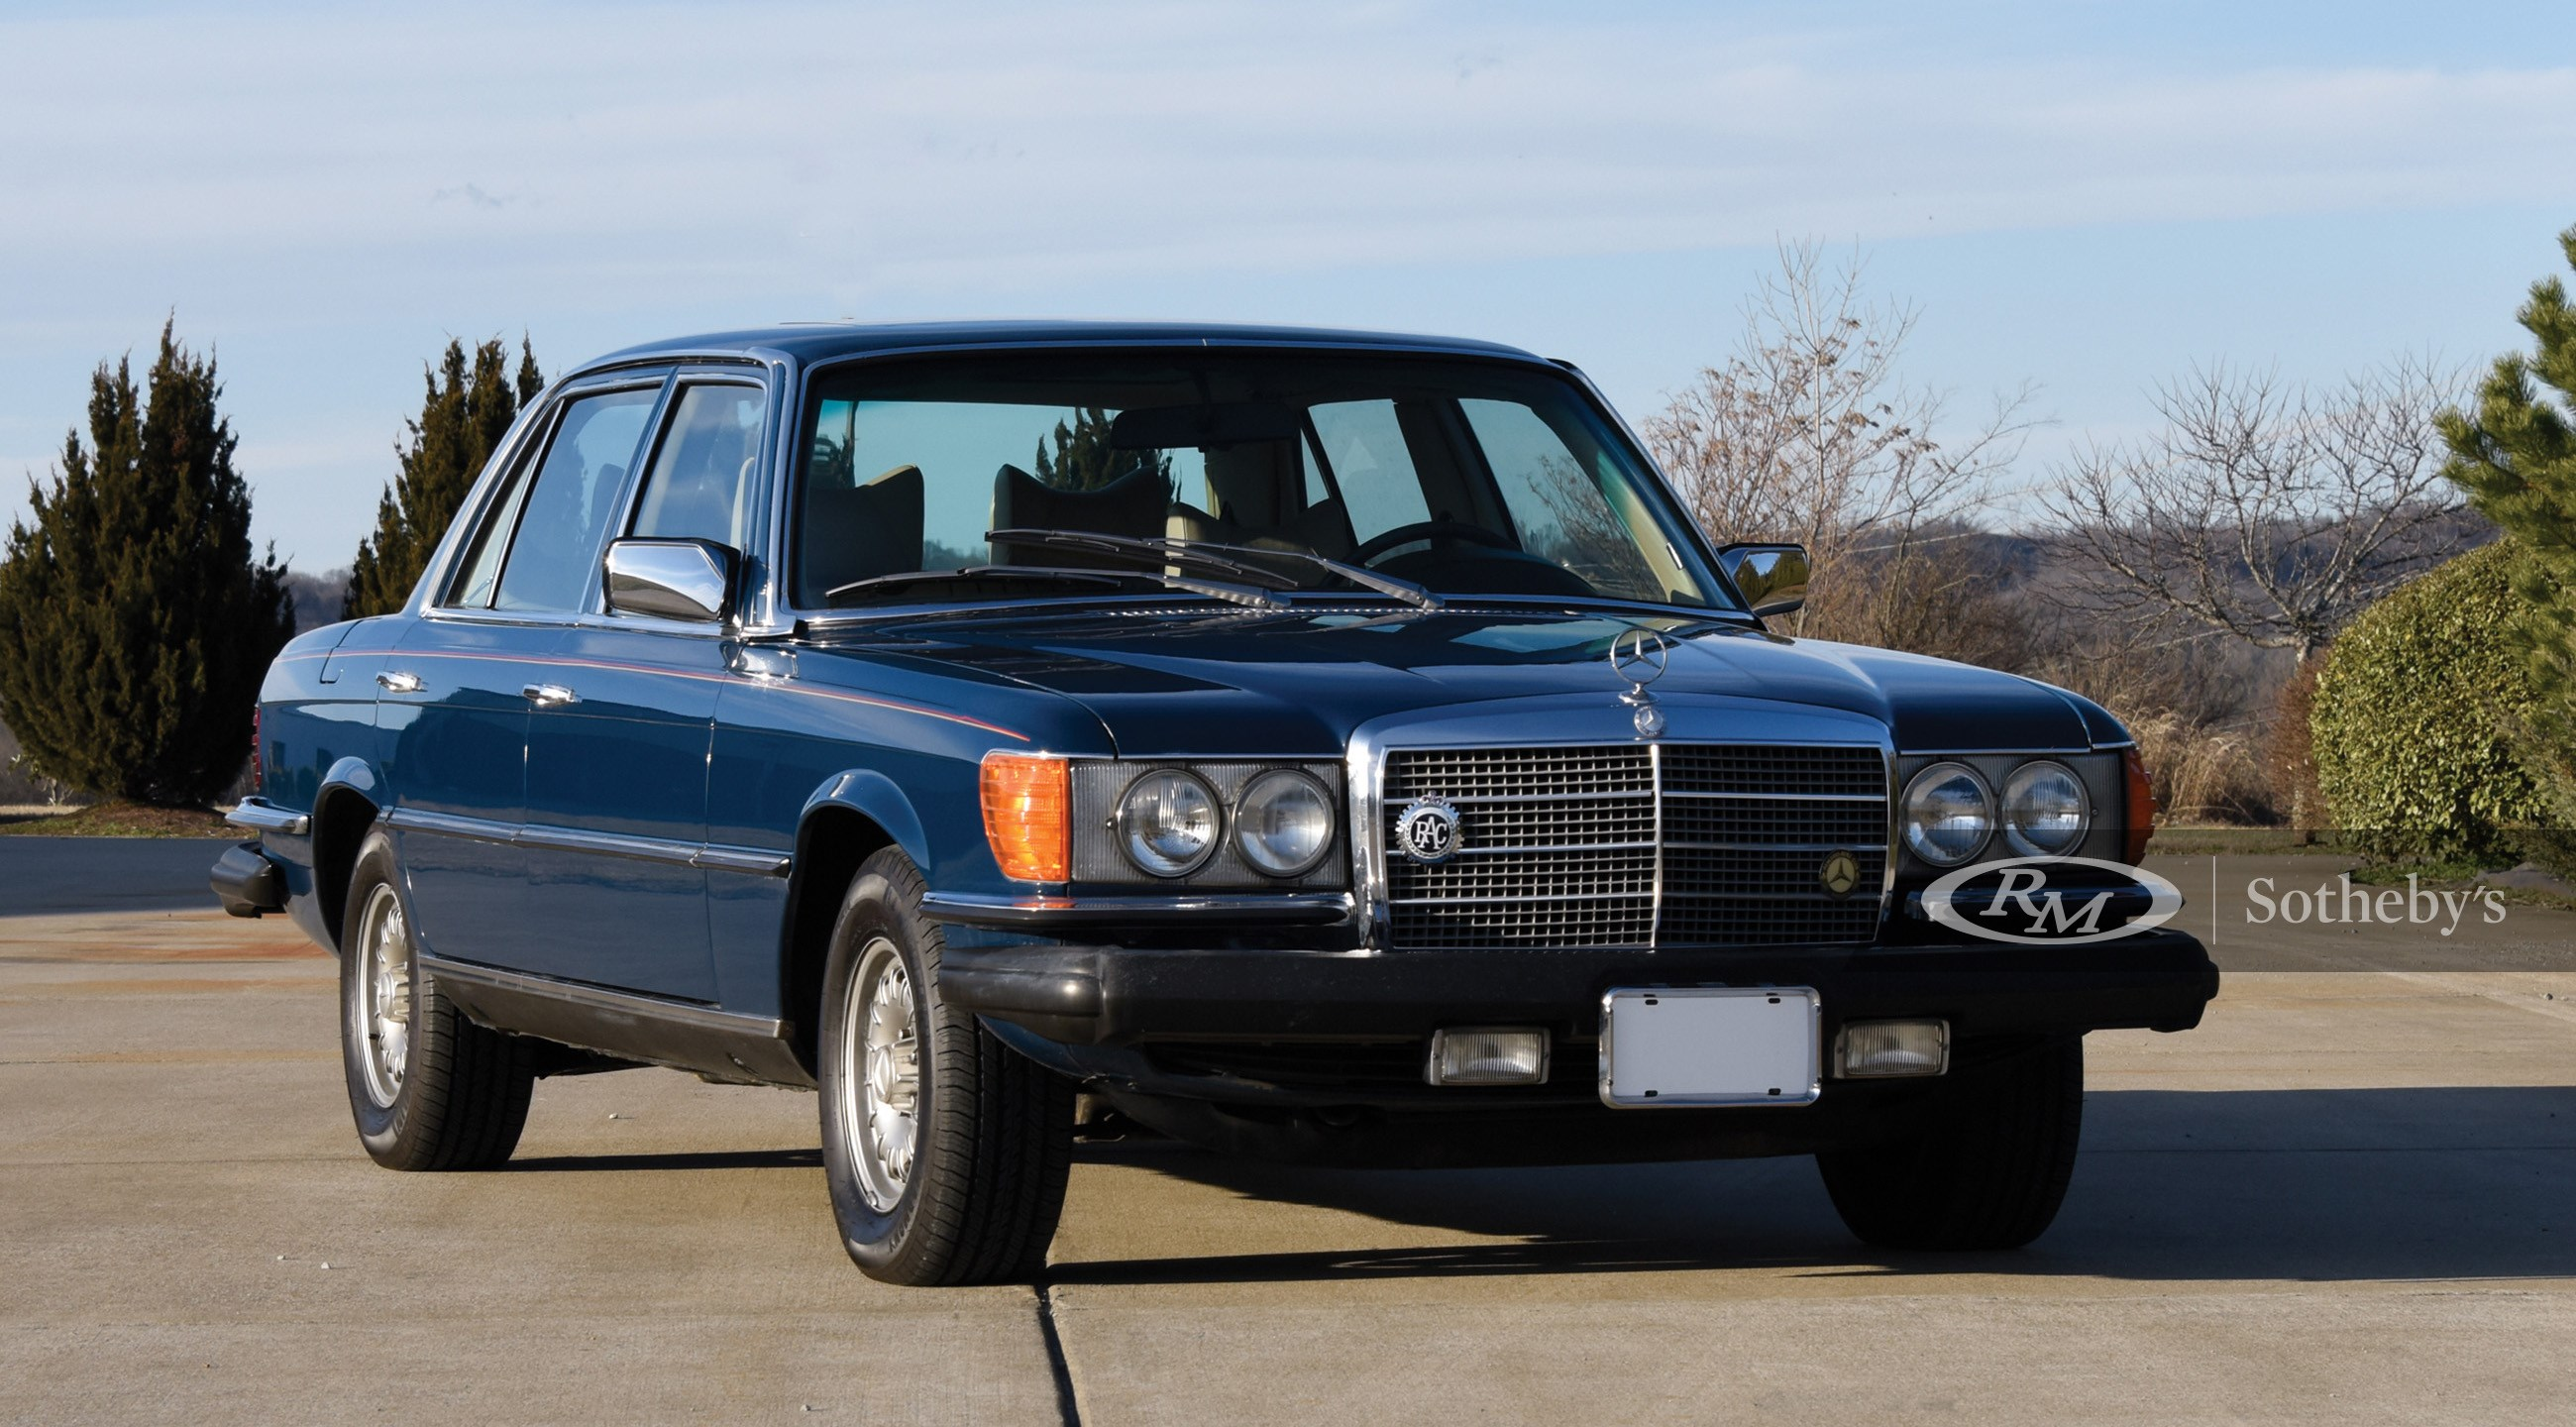 RM Sotheby's, 1977 Mercedes-Benz 450 SEL 6.9